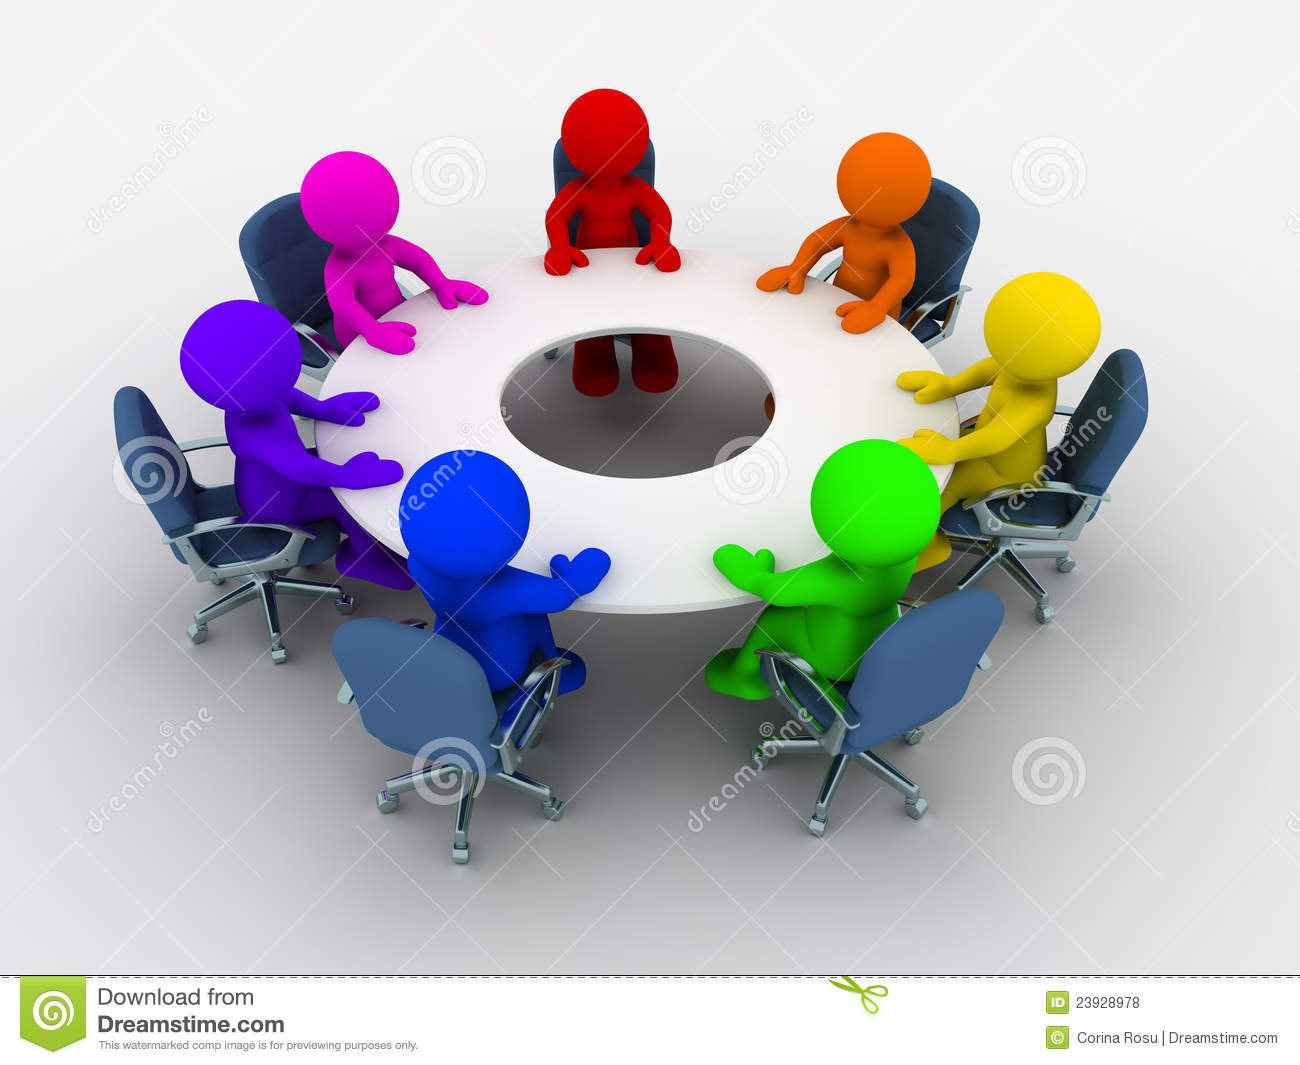 Cartoon Nursery Room Color  binations also Meeting Businessmen Personal 1219533 besides Stock Illustration Pleased To Meet You Businessman Meets Businesswoman Very Happy Nice Image51202777 also Royalty Free Stock Photos Conference Table Image23928978 in addition Kaffeepause 186775. on office meeting cartoon